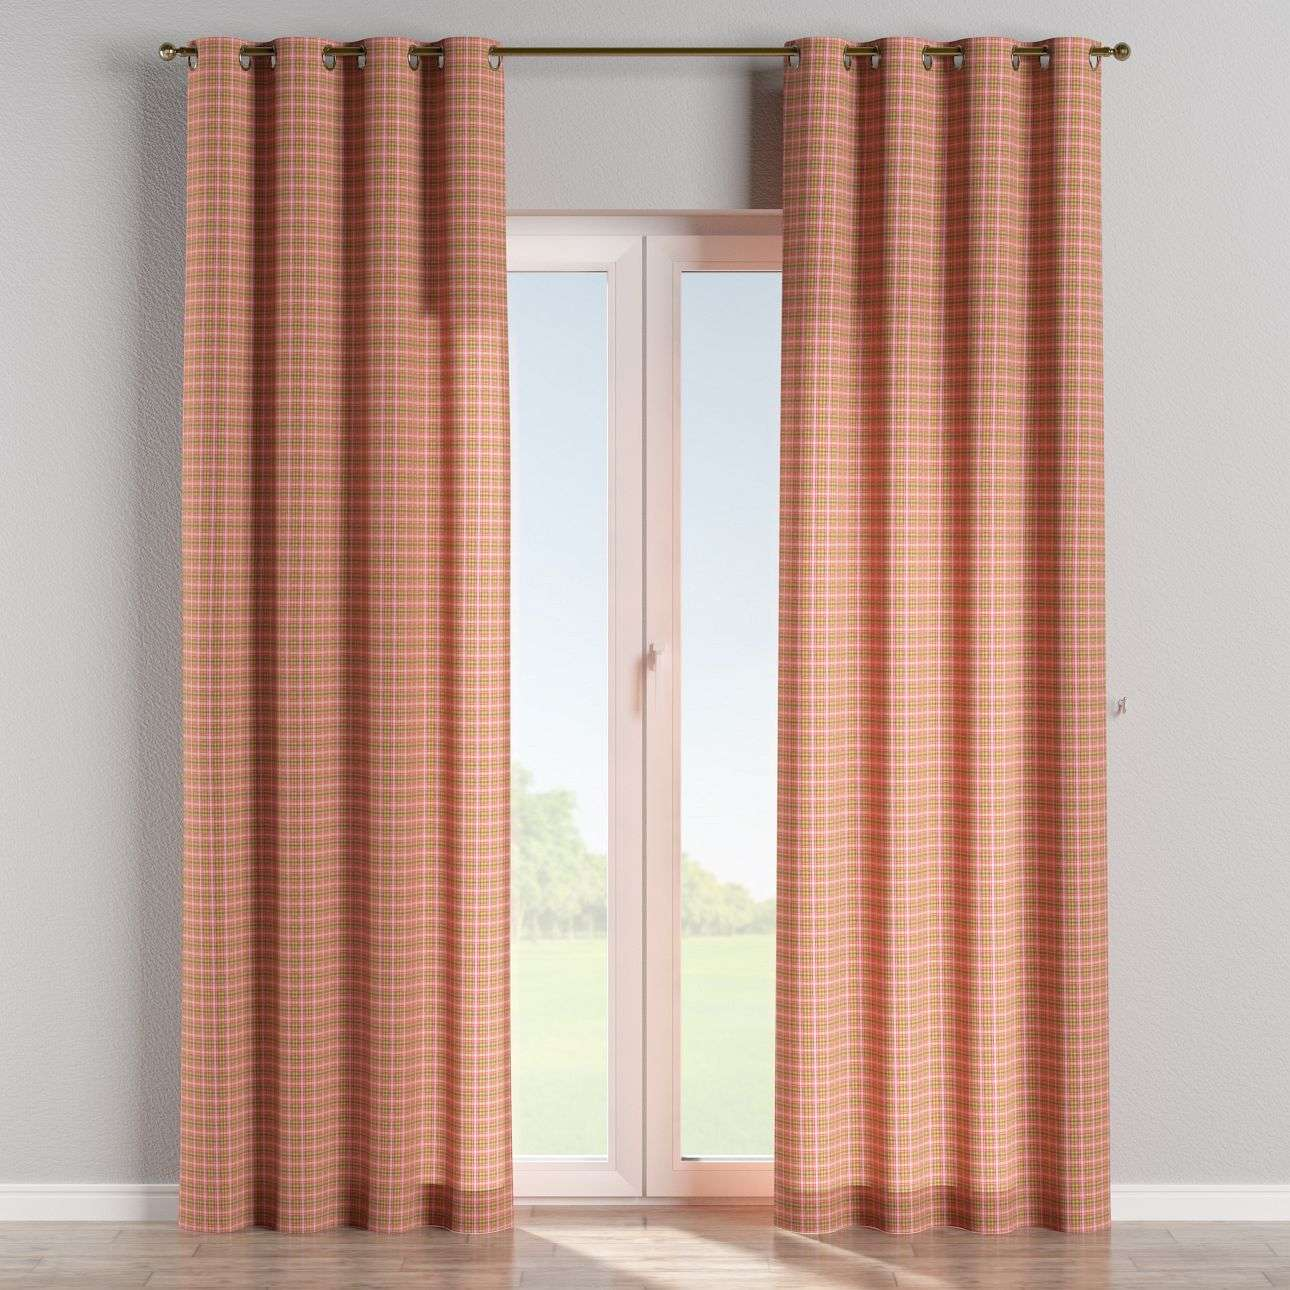 Eyelet curtains 130 x 260 cm (51 x 102 inch) in collection Bristol, fabric: 126-25